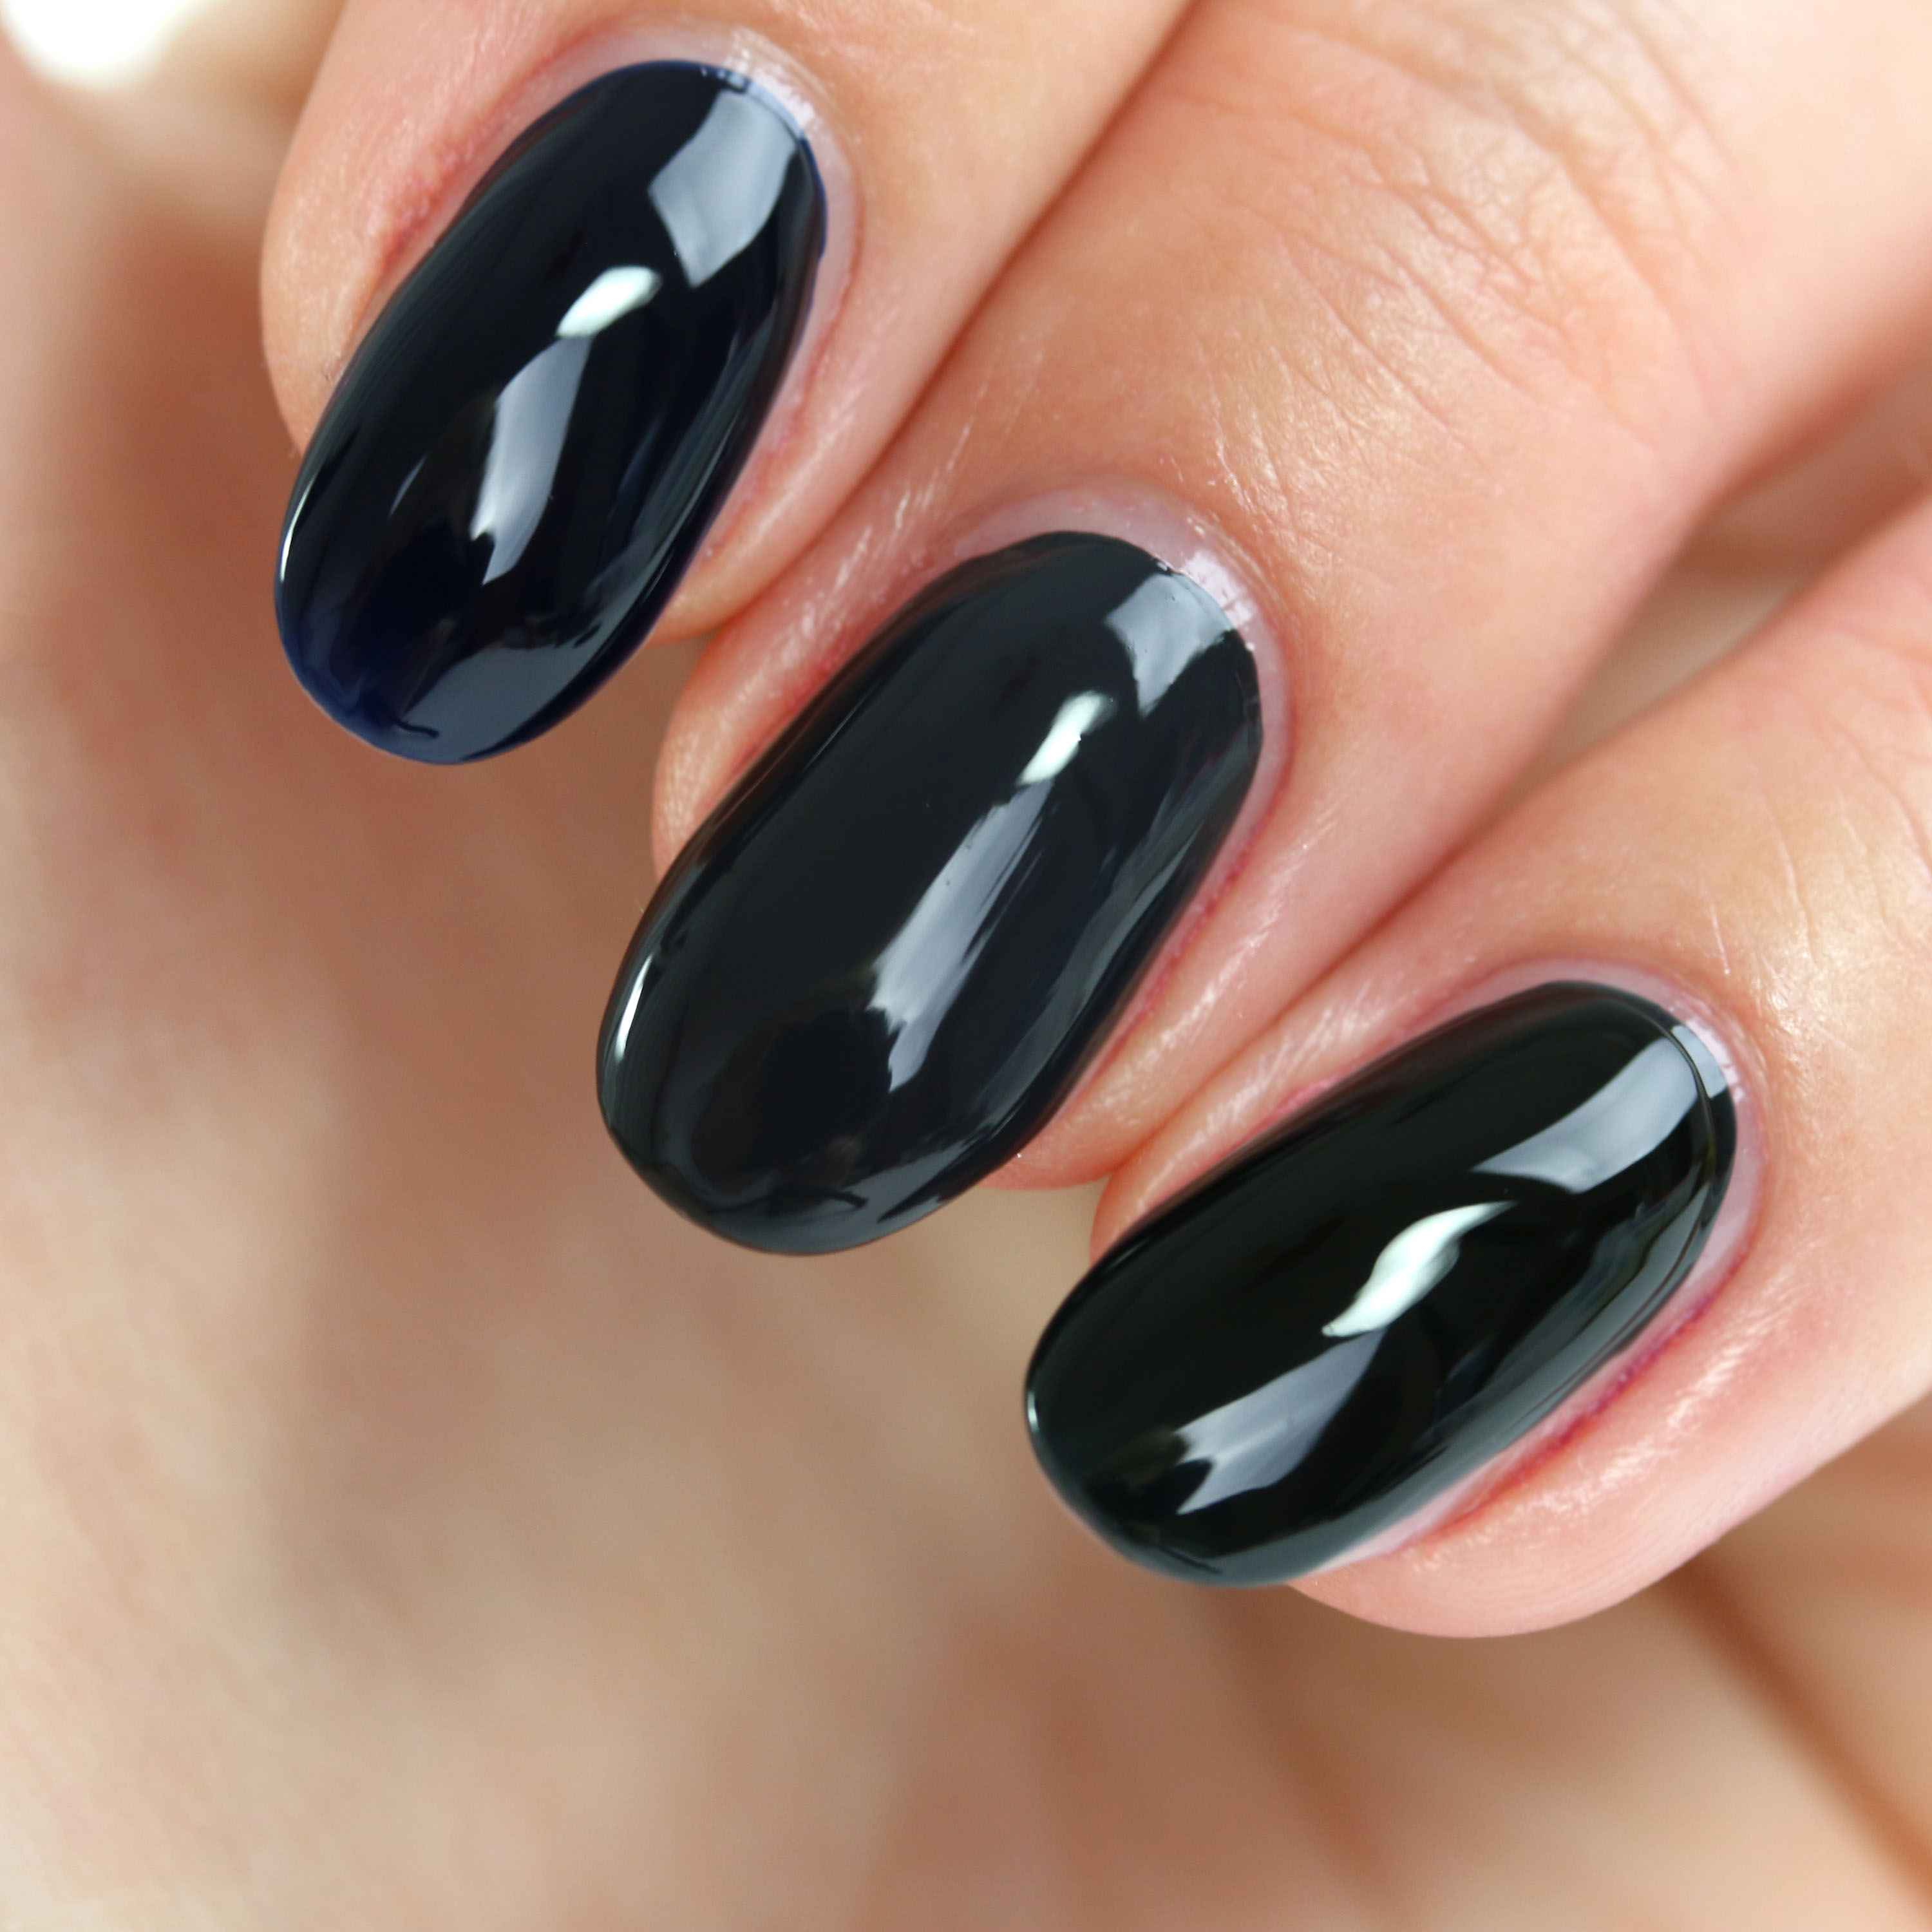 Catrice Noir Lacquer Swatches 1